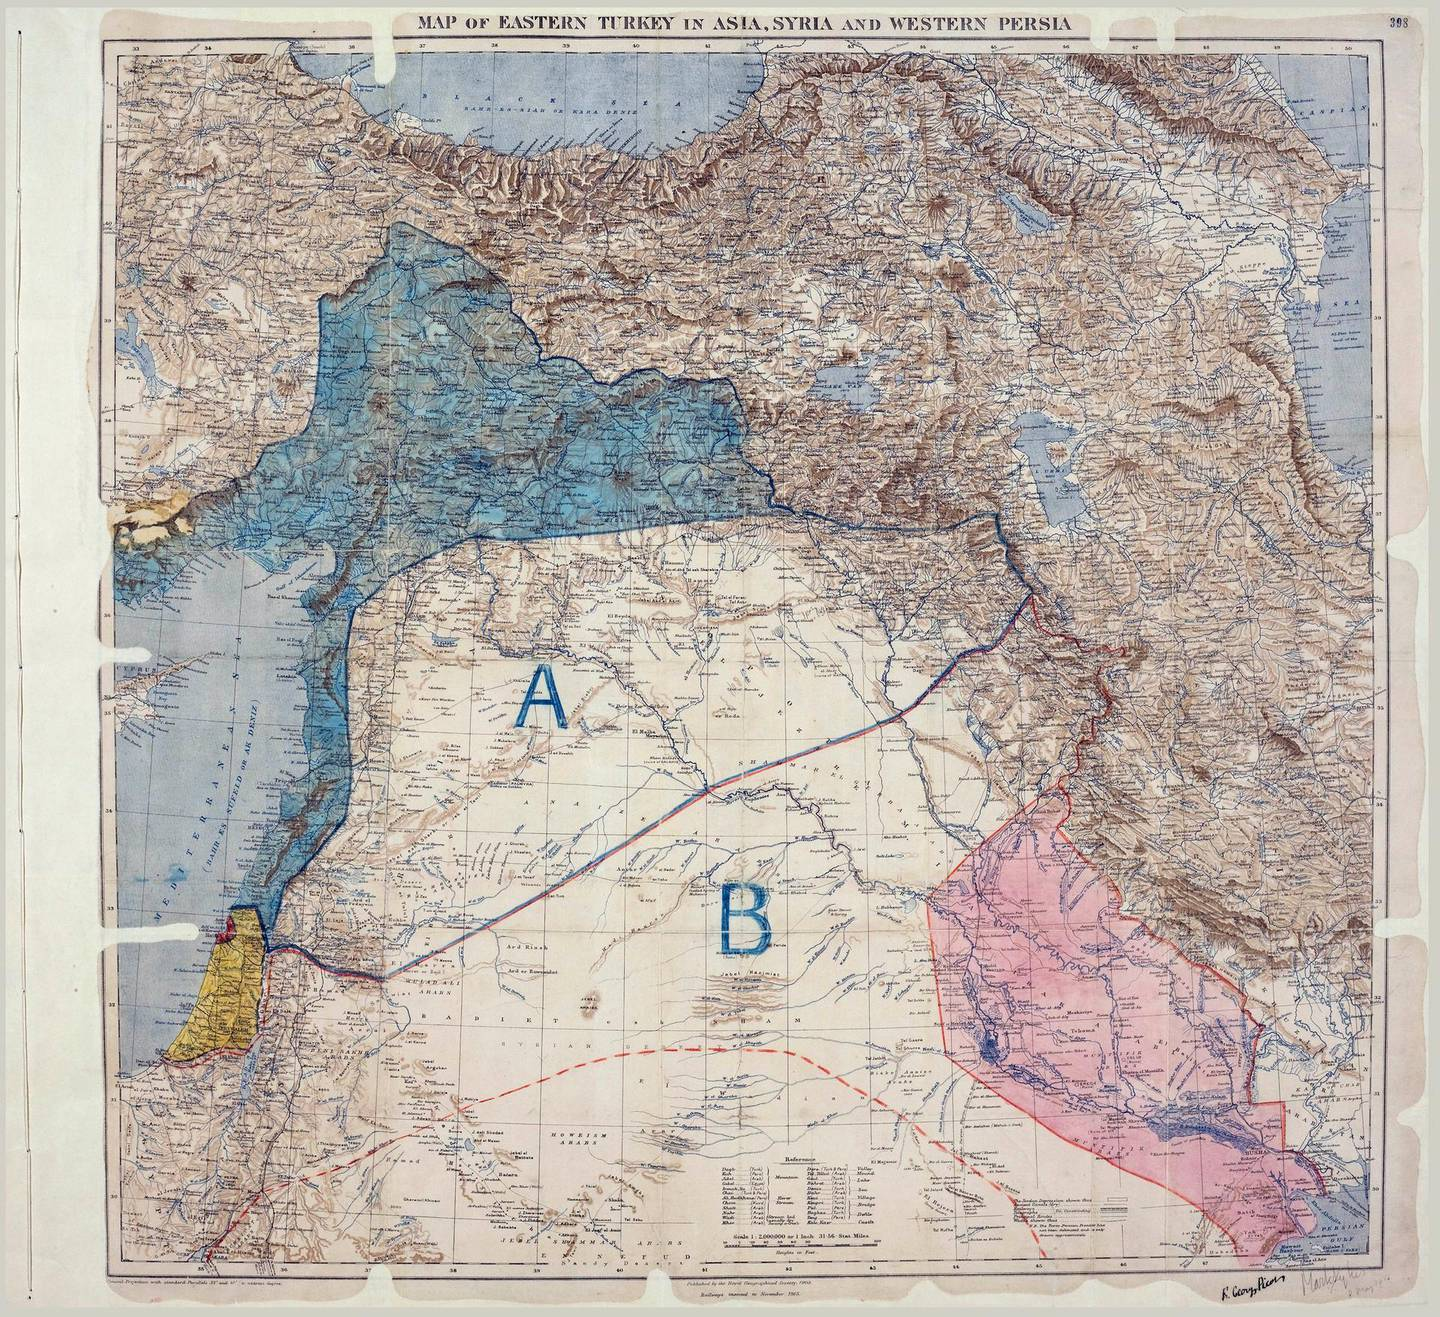 """Sykes-Picot Agreement - Original Map - English (1916). Sykes, M. and Georges-Picot, F. (1916) """"Map of Eastern Turkey in Asia, Syria and Western Persia."""" UNISPAL"""